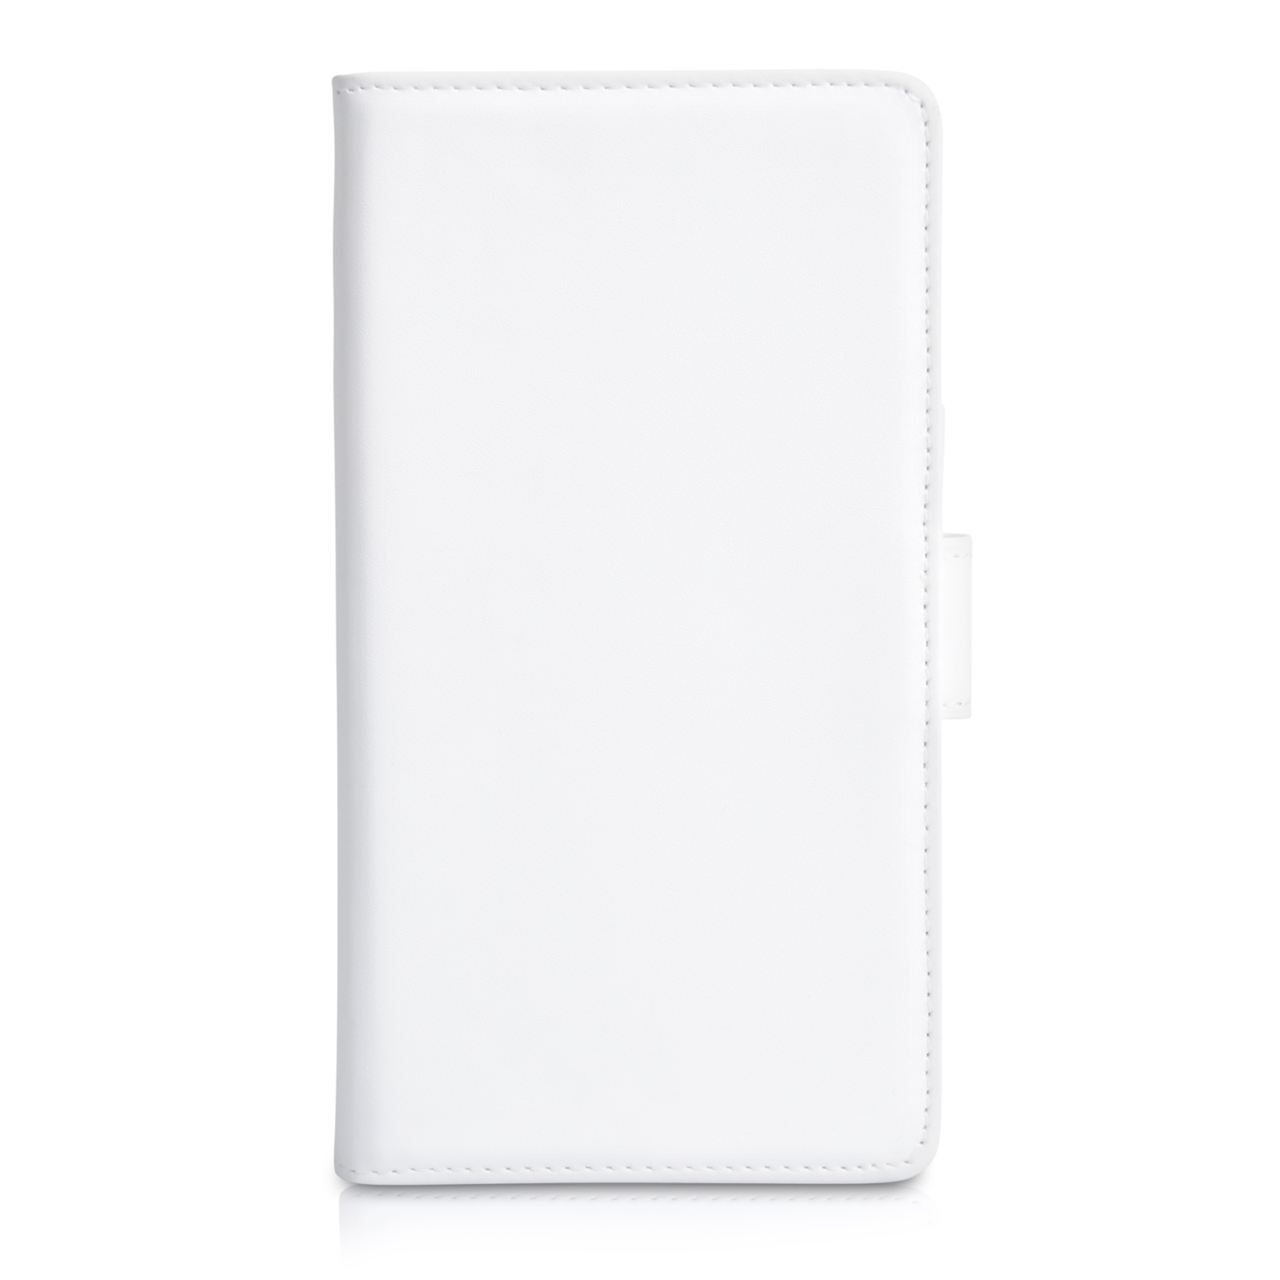 YouSave Accessories Sony Xperia Z1 Leather Effect Wallet - White